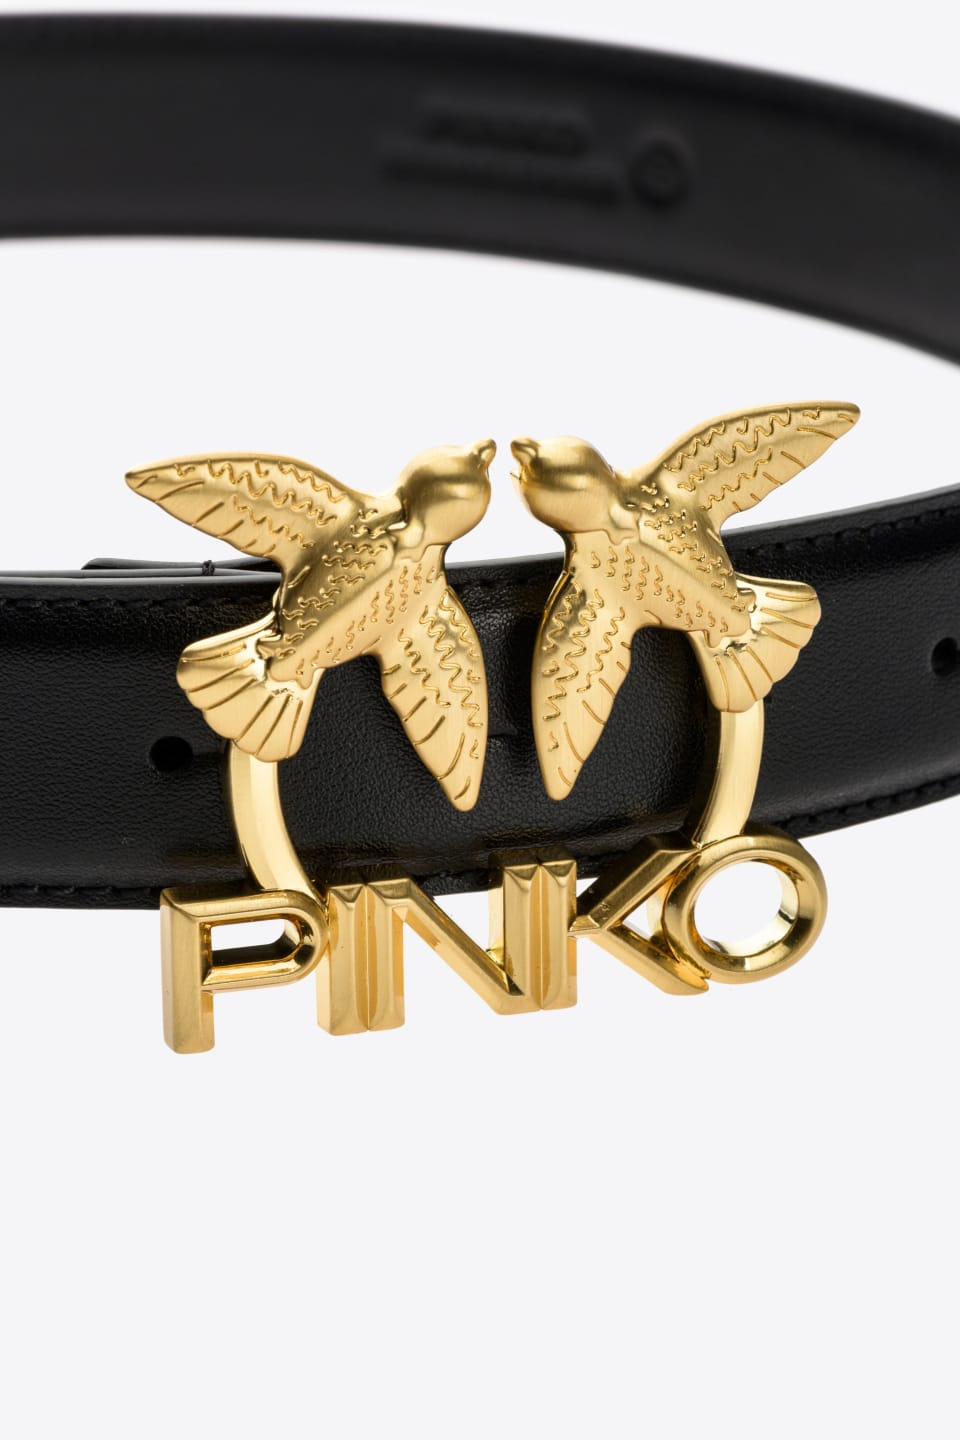 Leather Love Birds Logo belt - Pinko